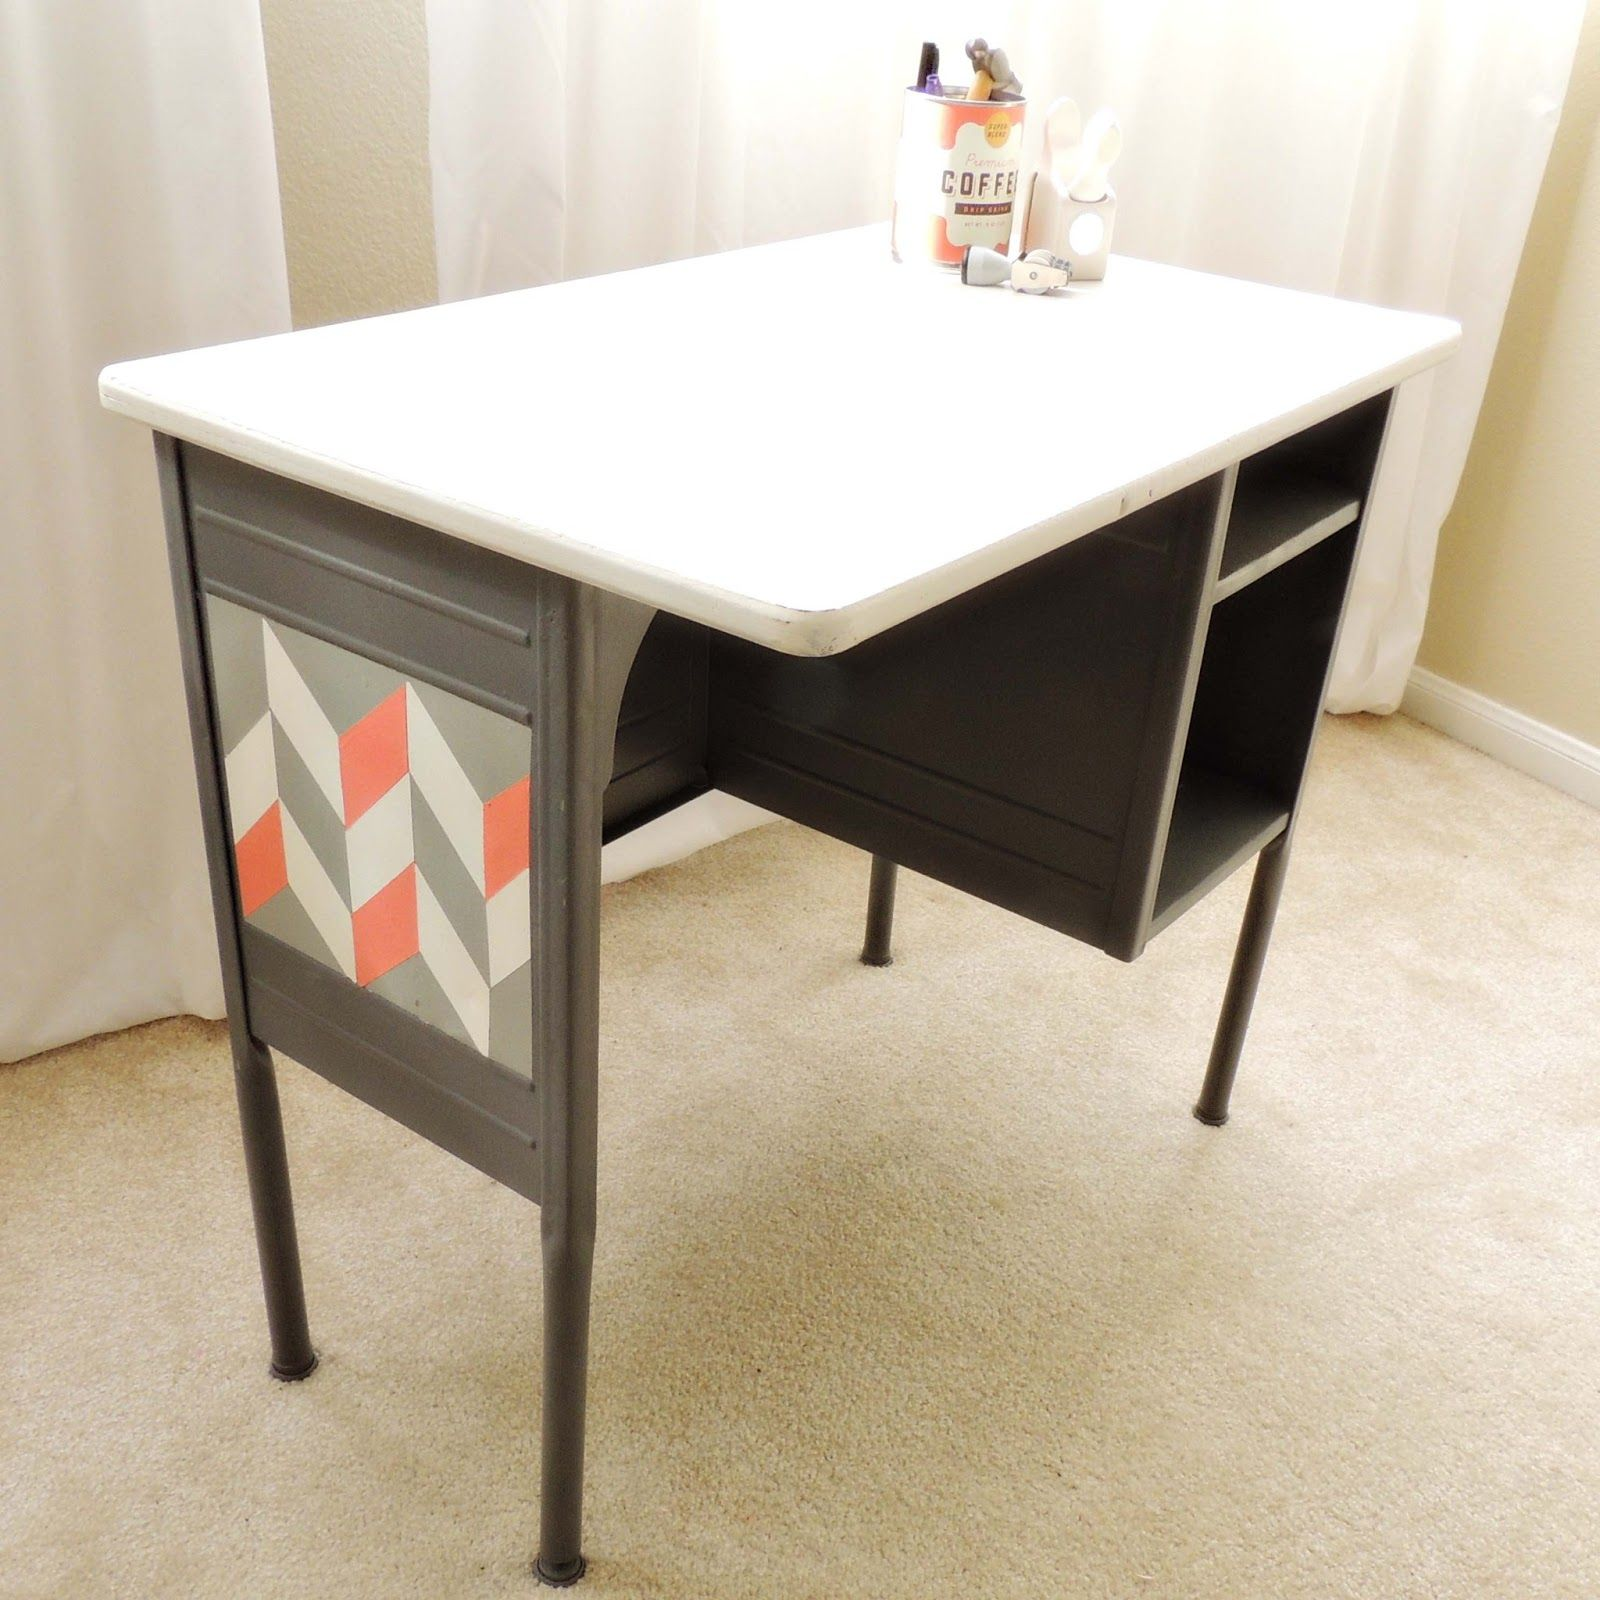 Vintage Metal School Desk Before After Josie Just Like Your Desks And She Painted